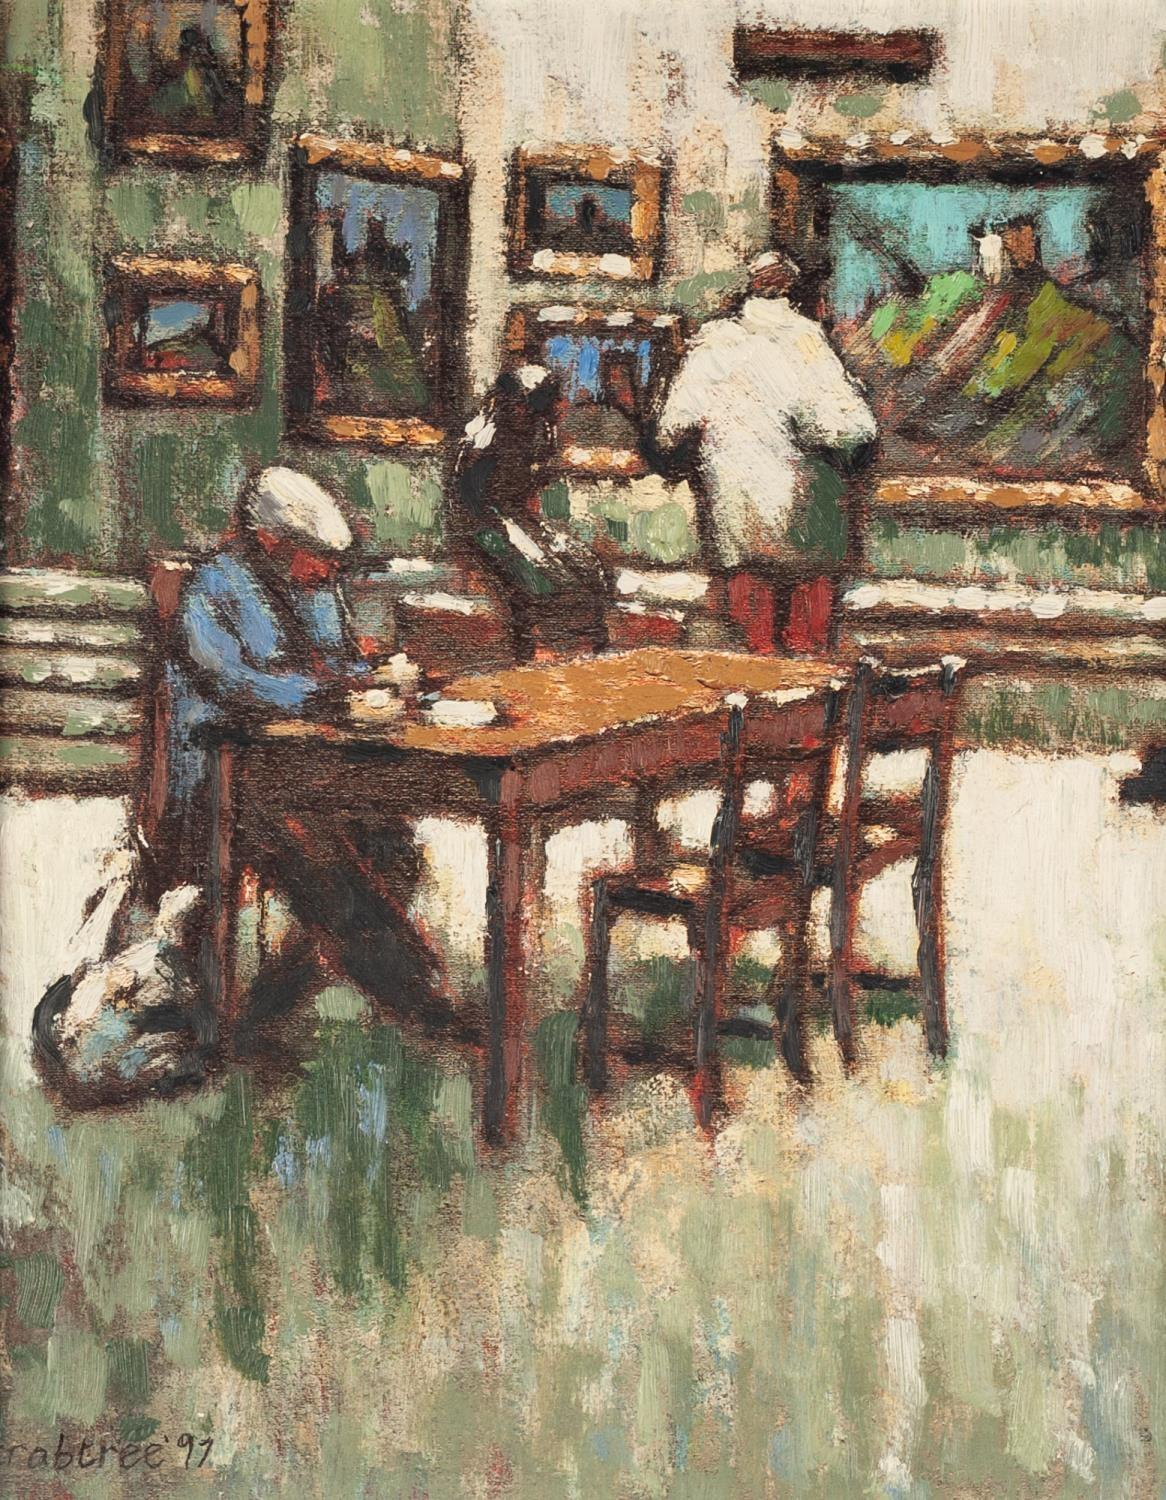 Lot 30 - CRABTREE (TWENTIETH CENTURY) OIL ON BOARD Gallery interior with a man sat at a table with a dog at